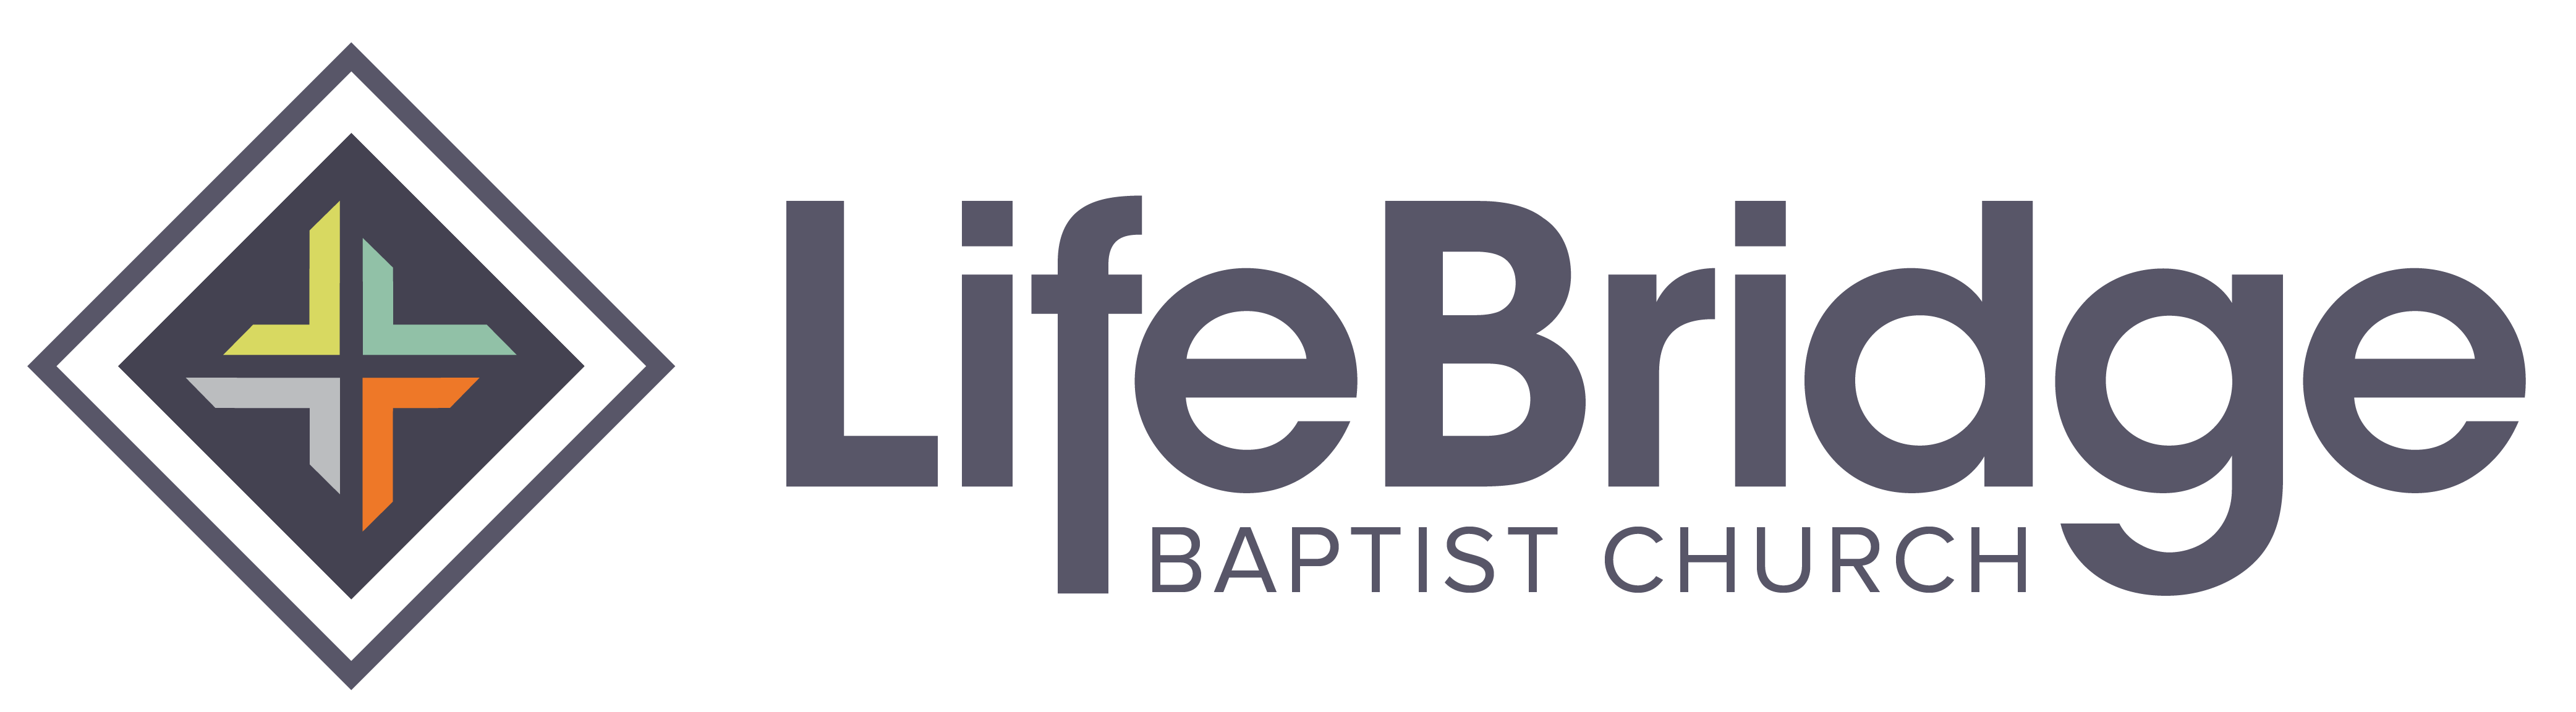 LifeBridge Baptist Church